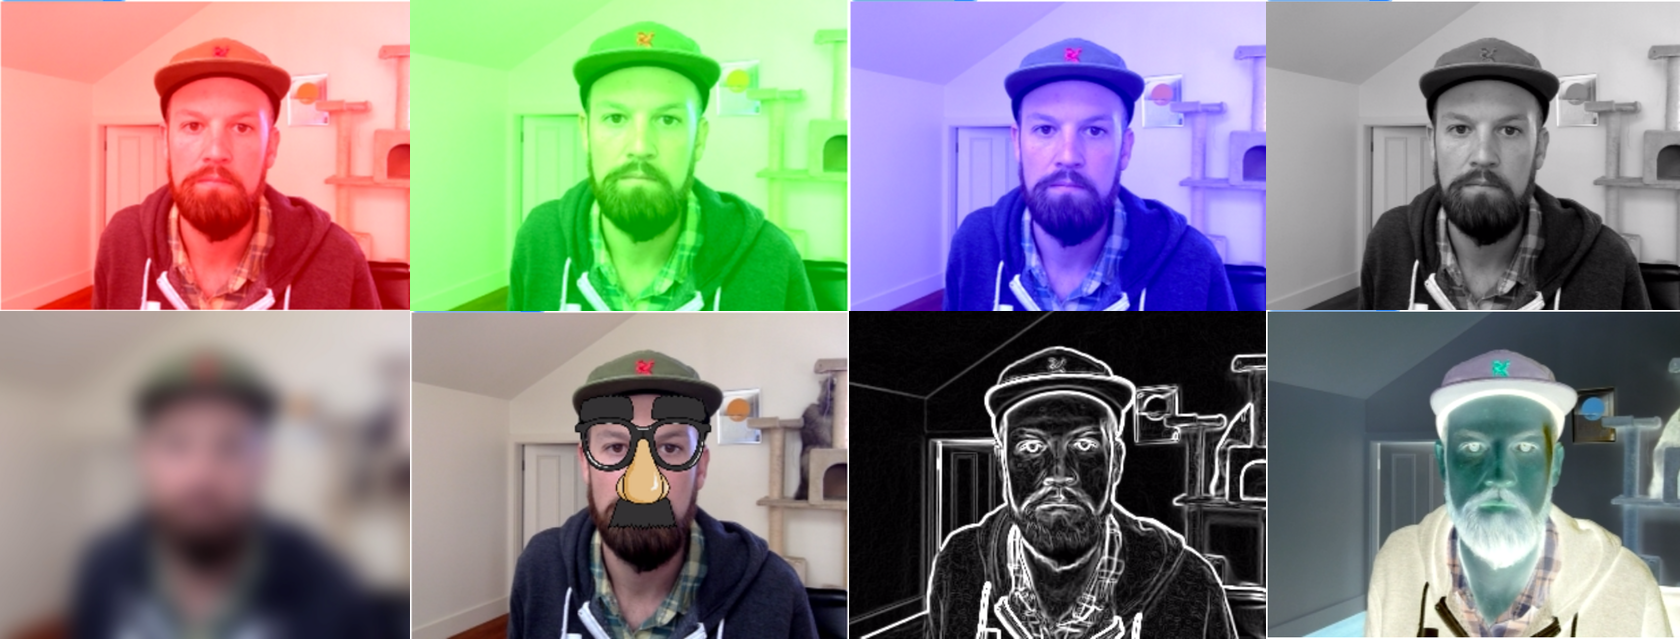 opentok-camera-filters collage